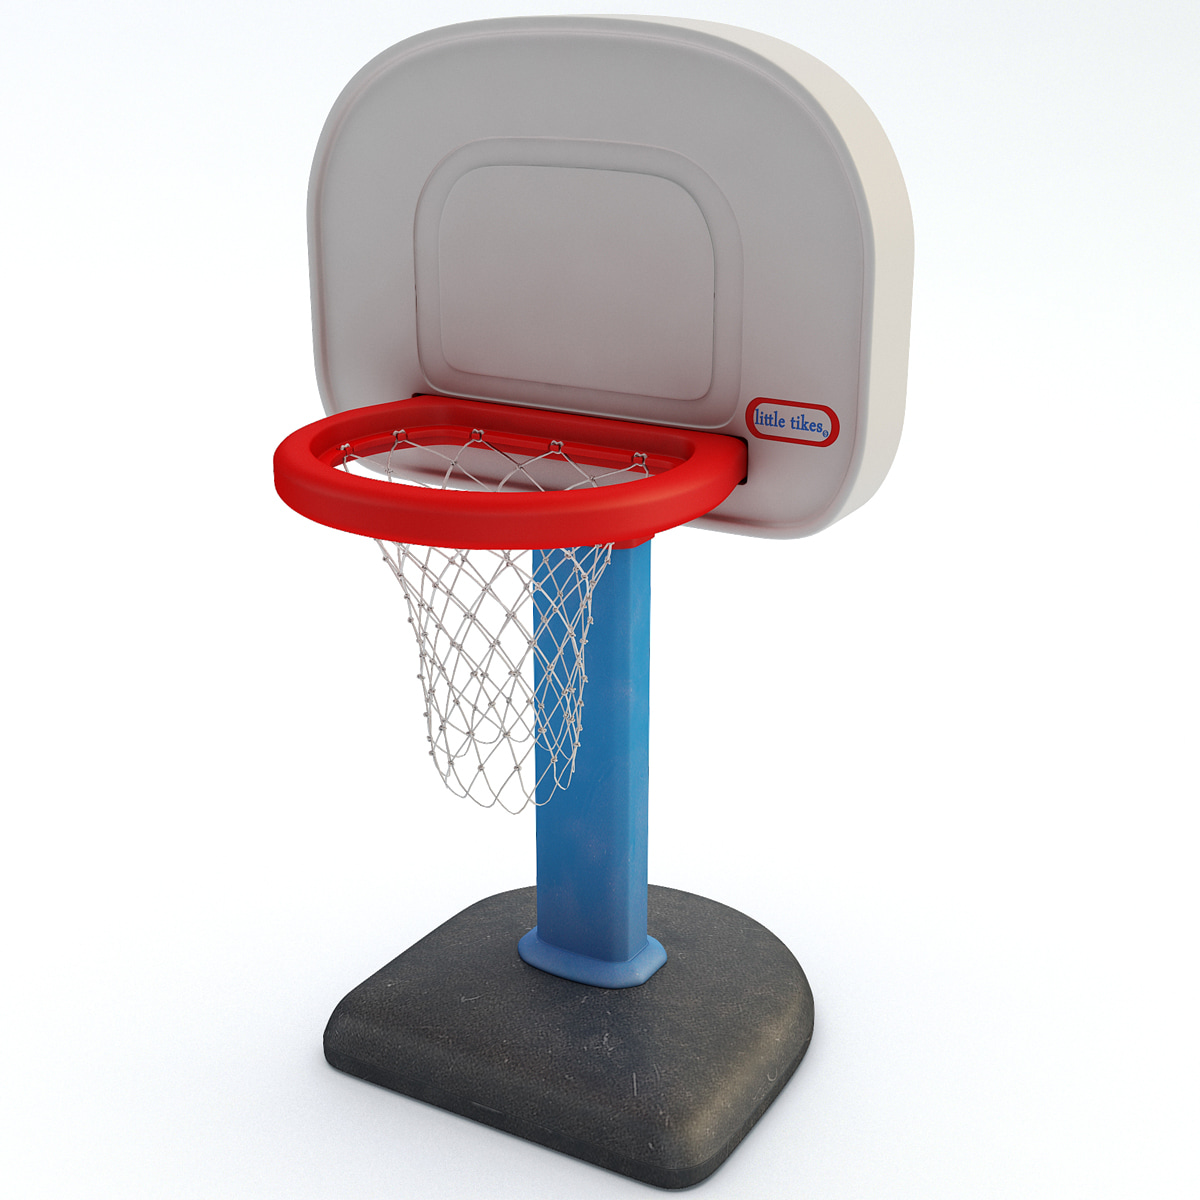 Toys R Us Basketball Systems : Little tikes basketball goal scores